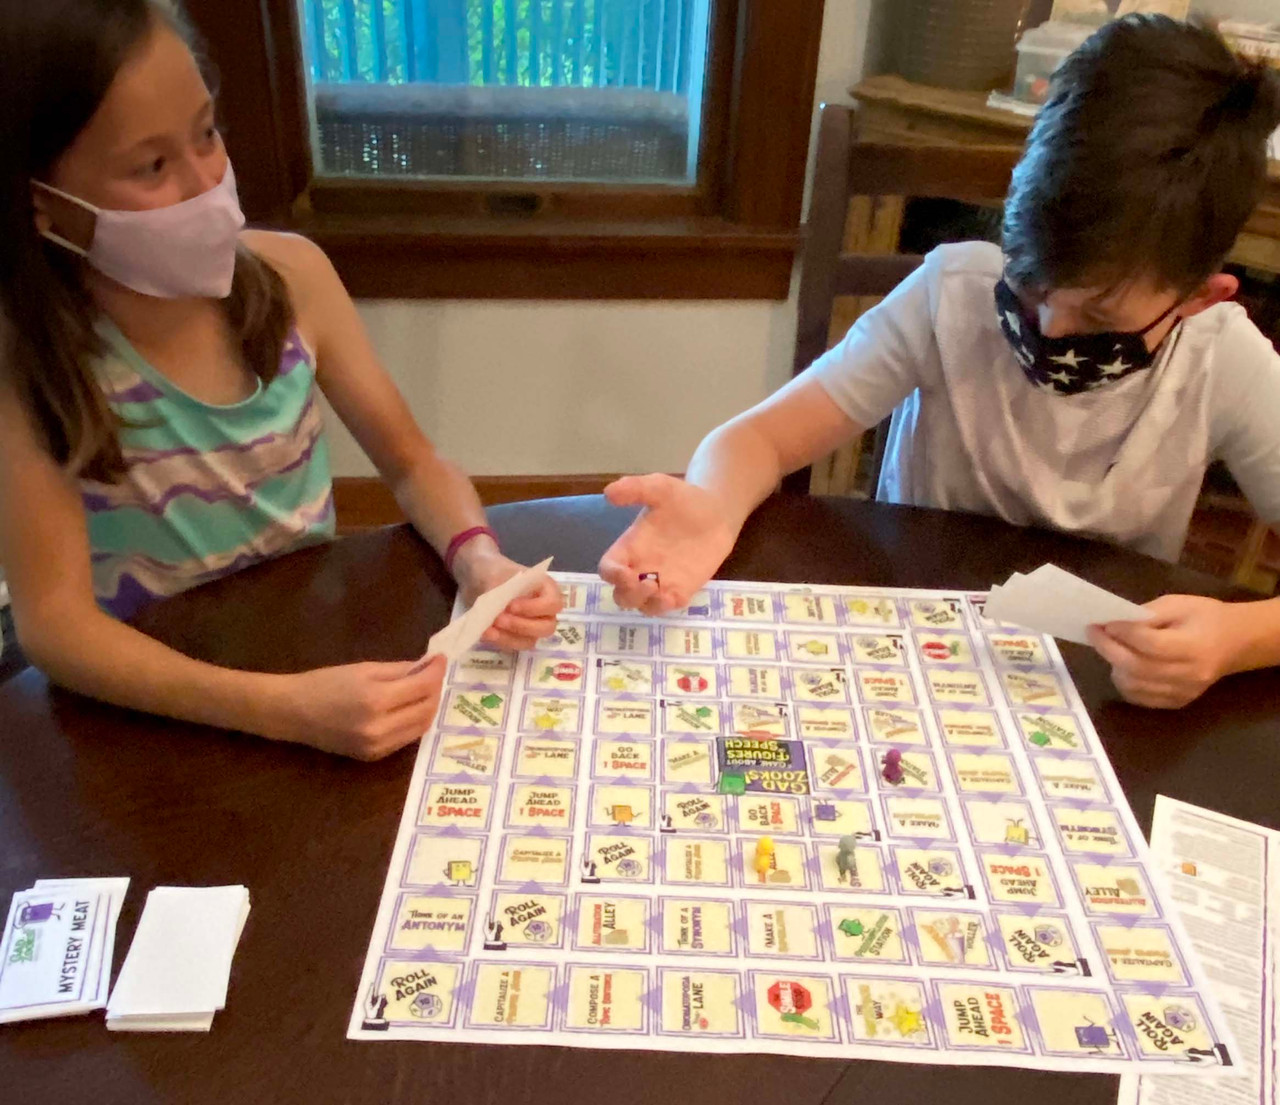 GadZooks! is a witty word game to play at home or in the classroom. It's a board/style game played similarly to Apples to Apples. Participants come up with an example of the literary device using a word(s) from the cards in their hand.